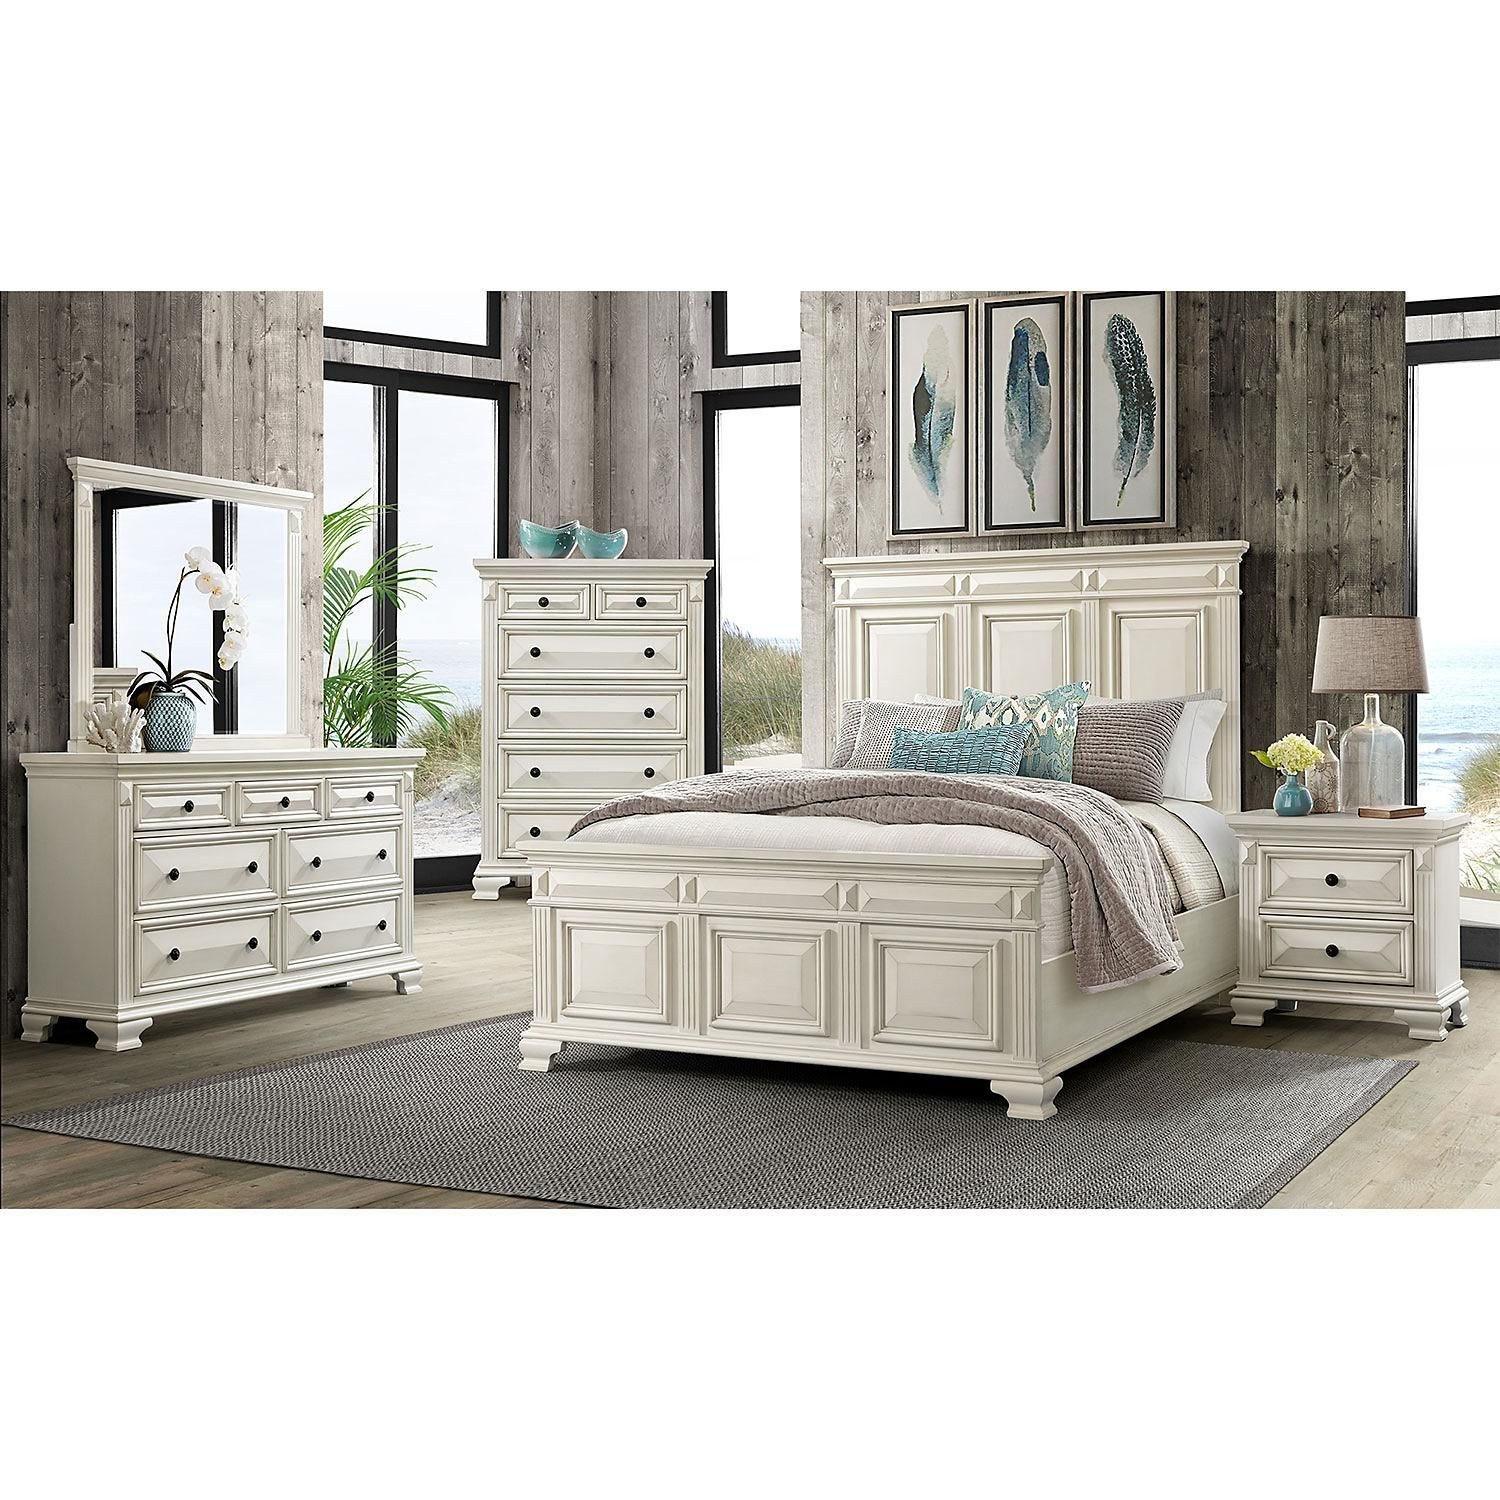 King Bedroom Set with Mattress Awesome $1599 00 society Den Trent Panel 6 Piece King Bedroom Set